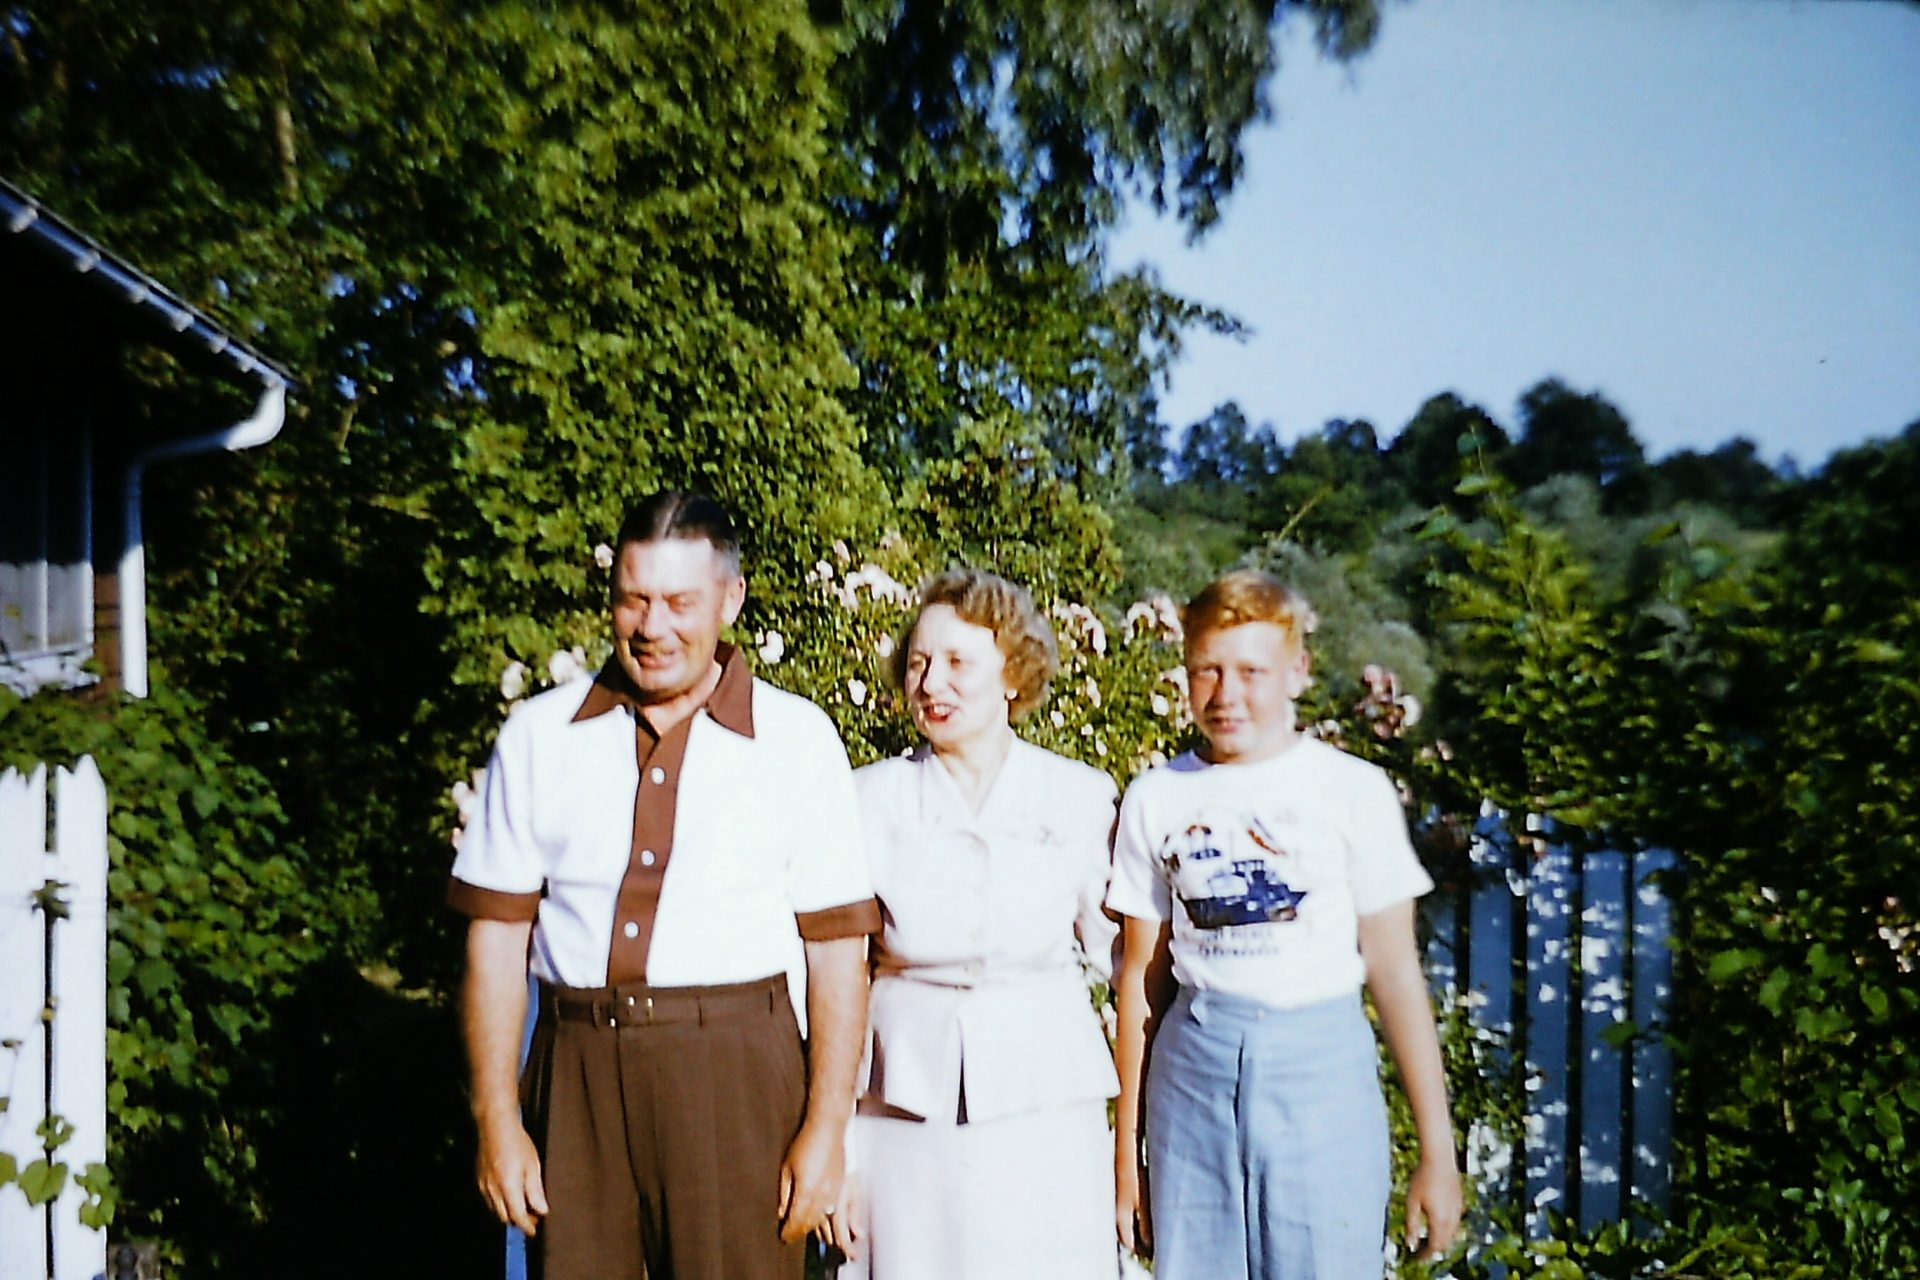 Elgin T. Upham, Henrietta Young Upham, and E. Tyler Upham.   July, 1954, Rochester, NY.<br />